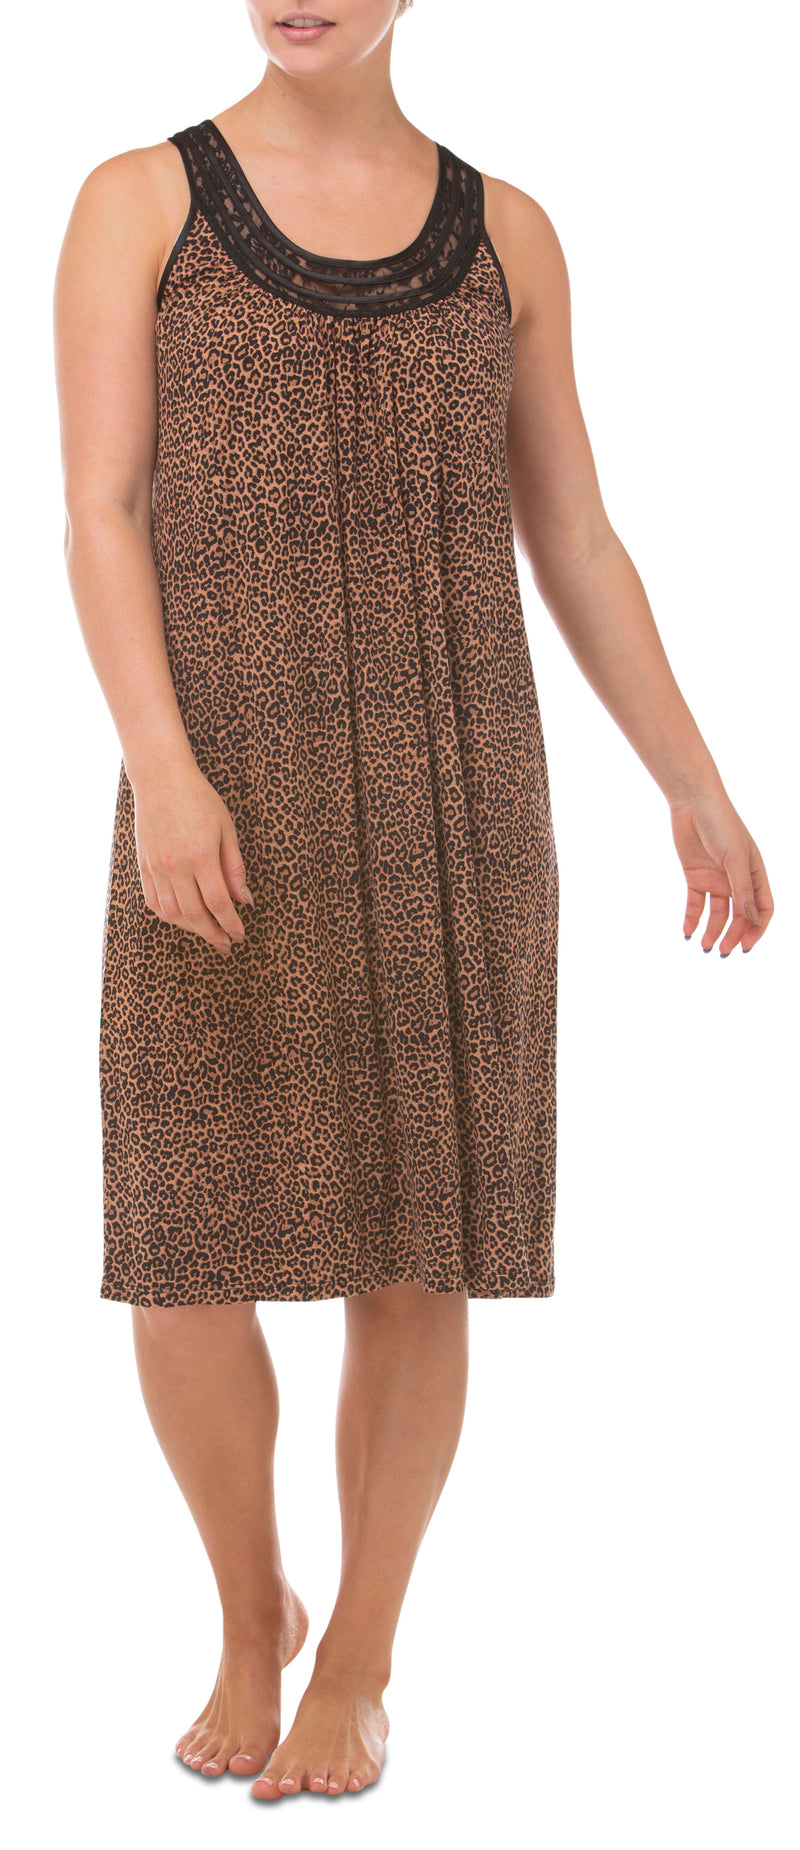 Yuu - Leopard Lace Sleeveless Dress